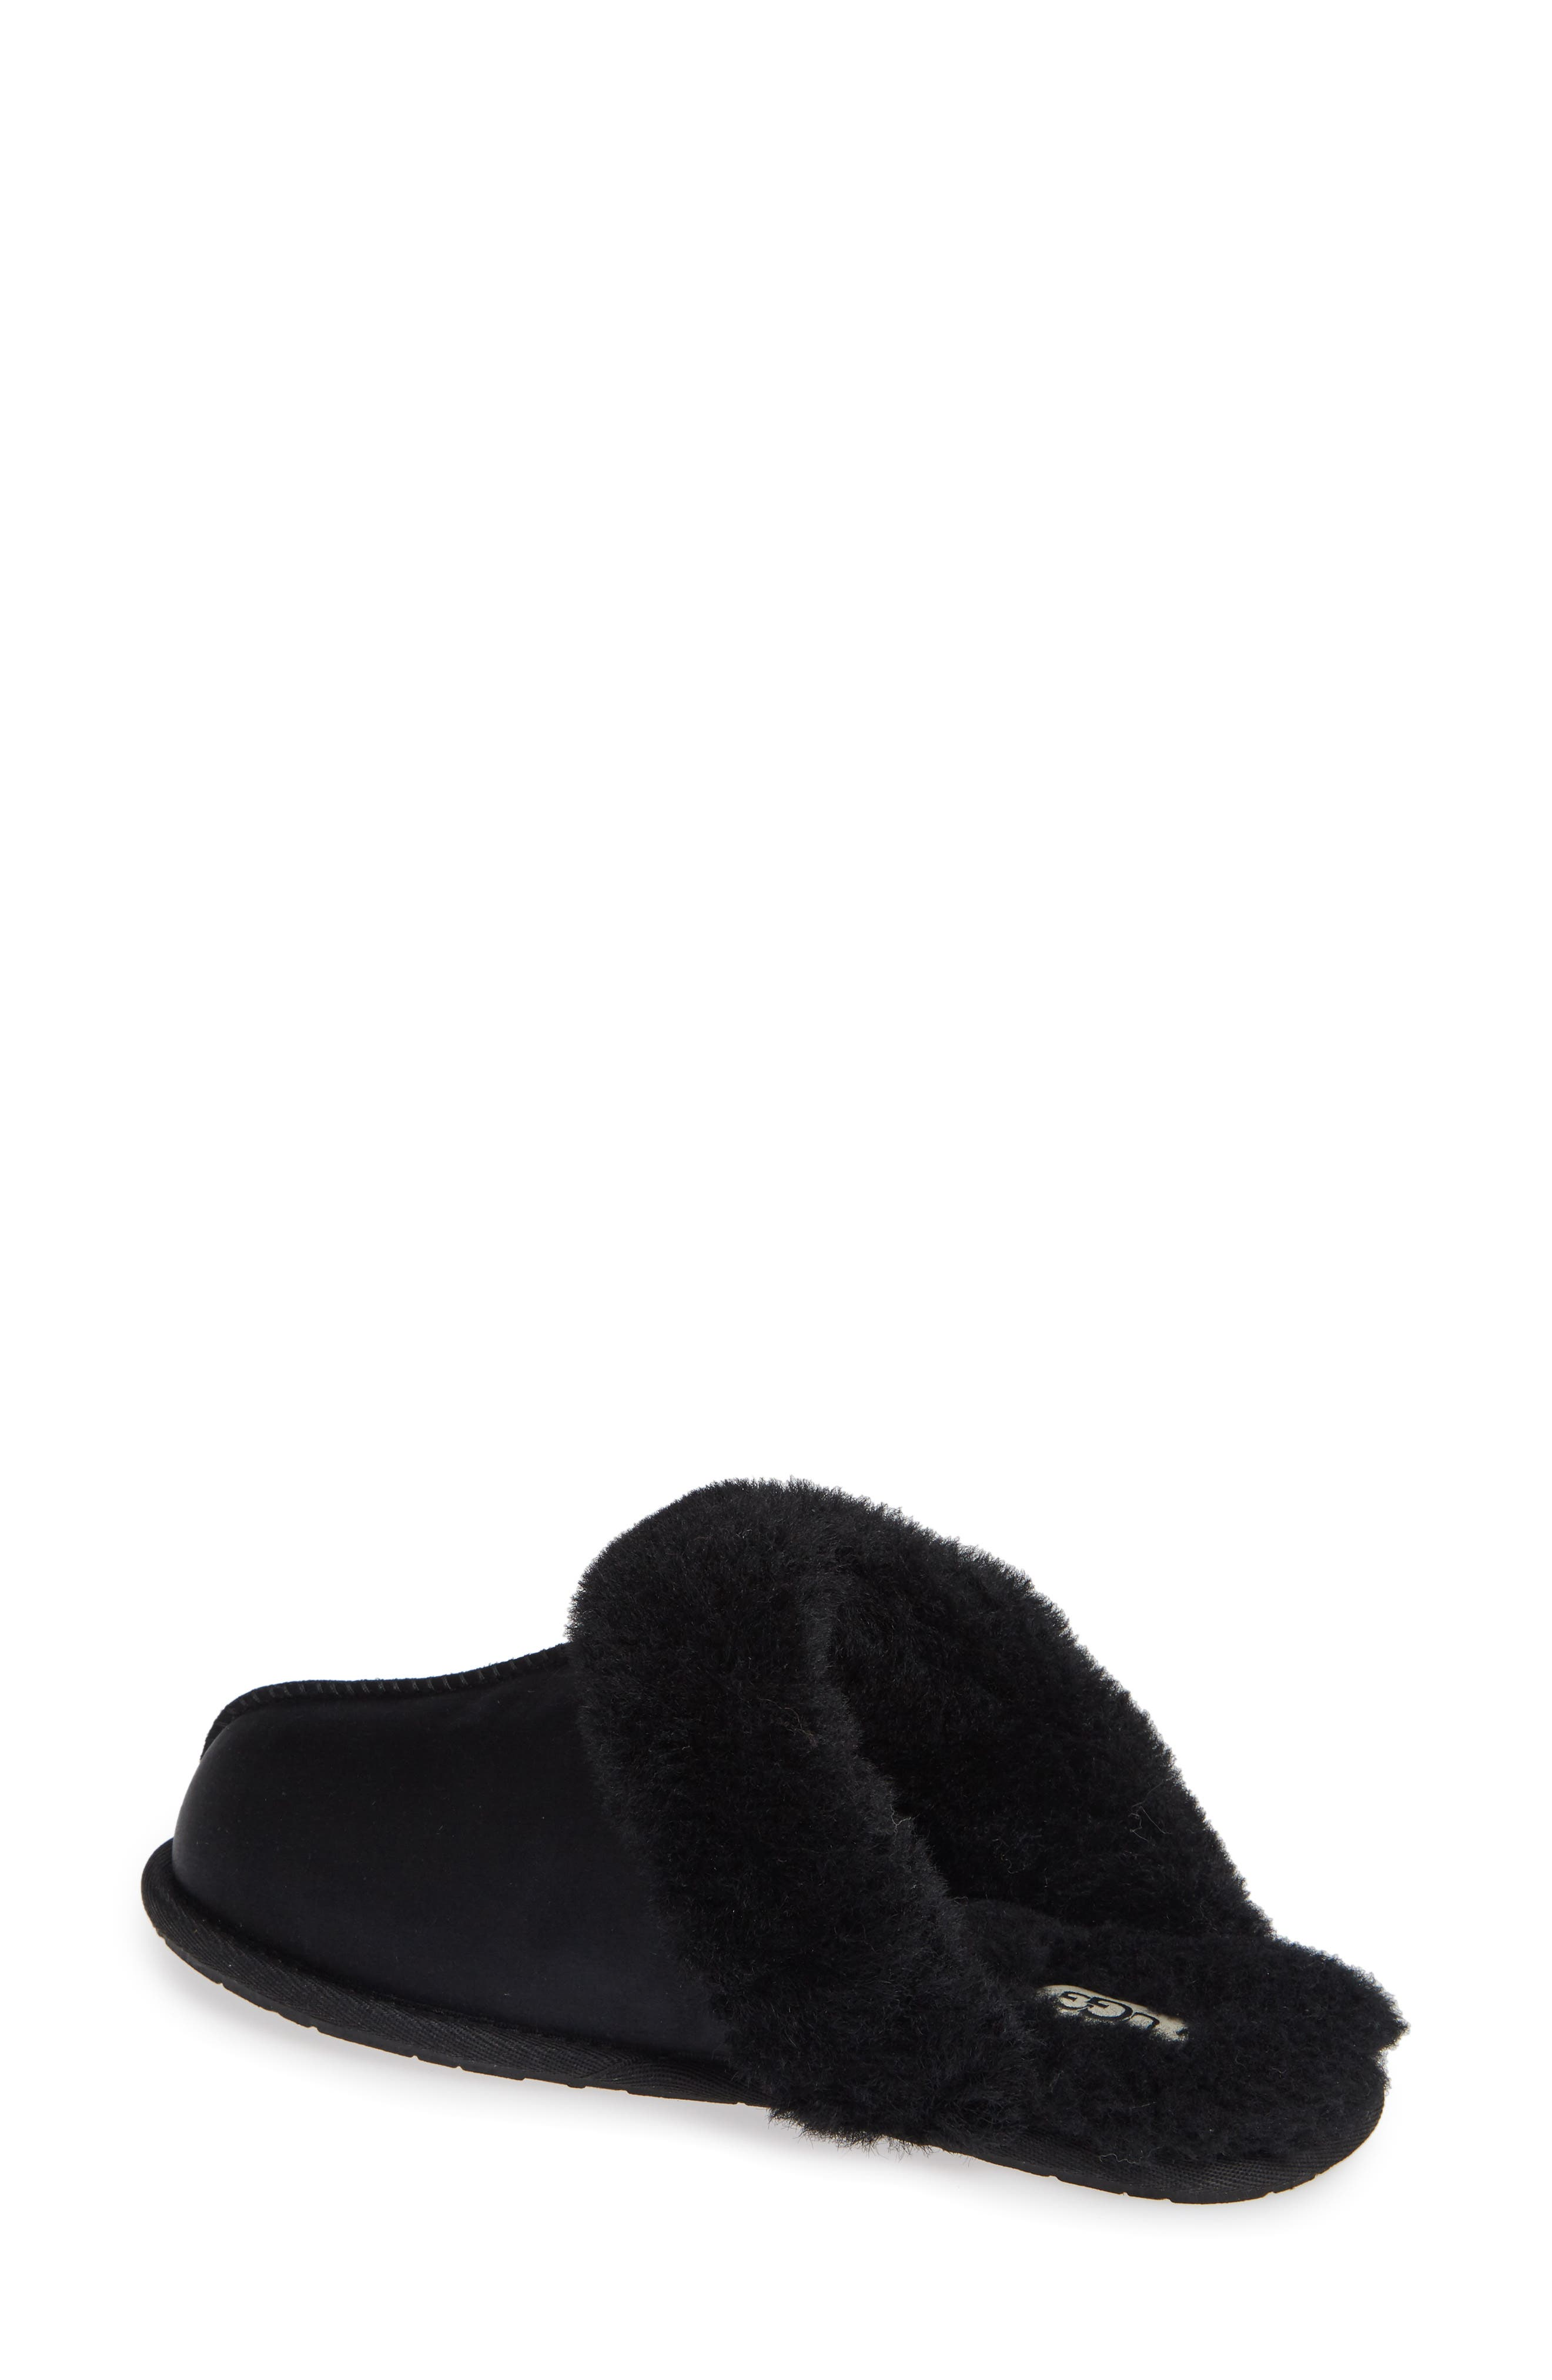 UGG<SUP>®</SUP>, Scuffette II Satin Slipper, Alternate thumbnail 2, color, 001